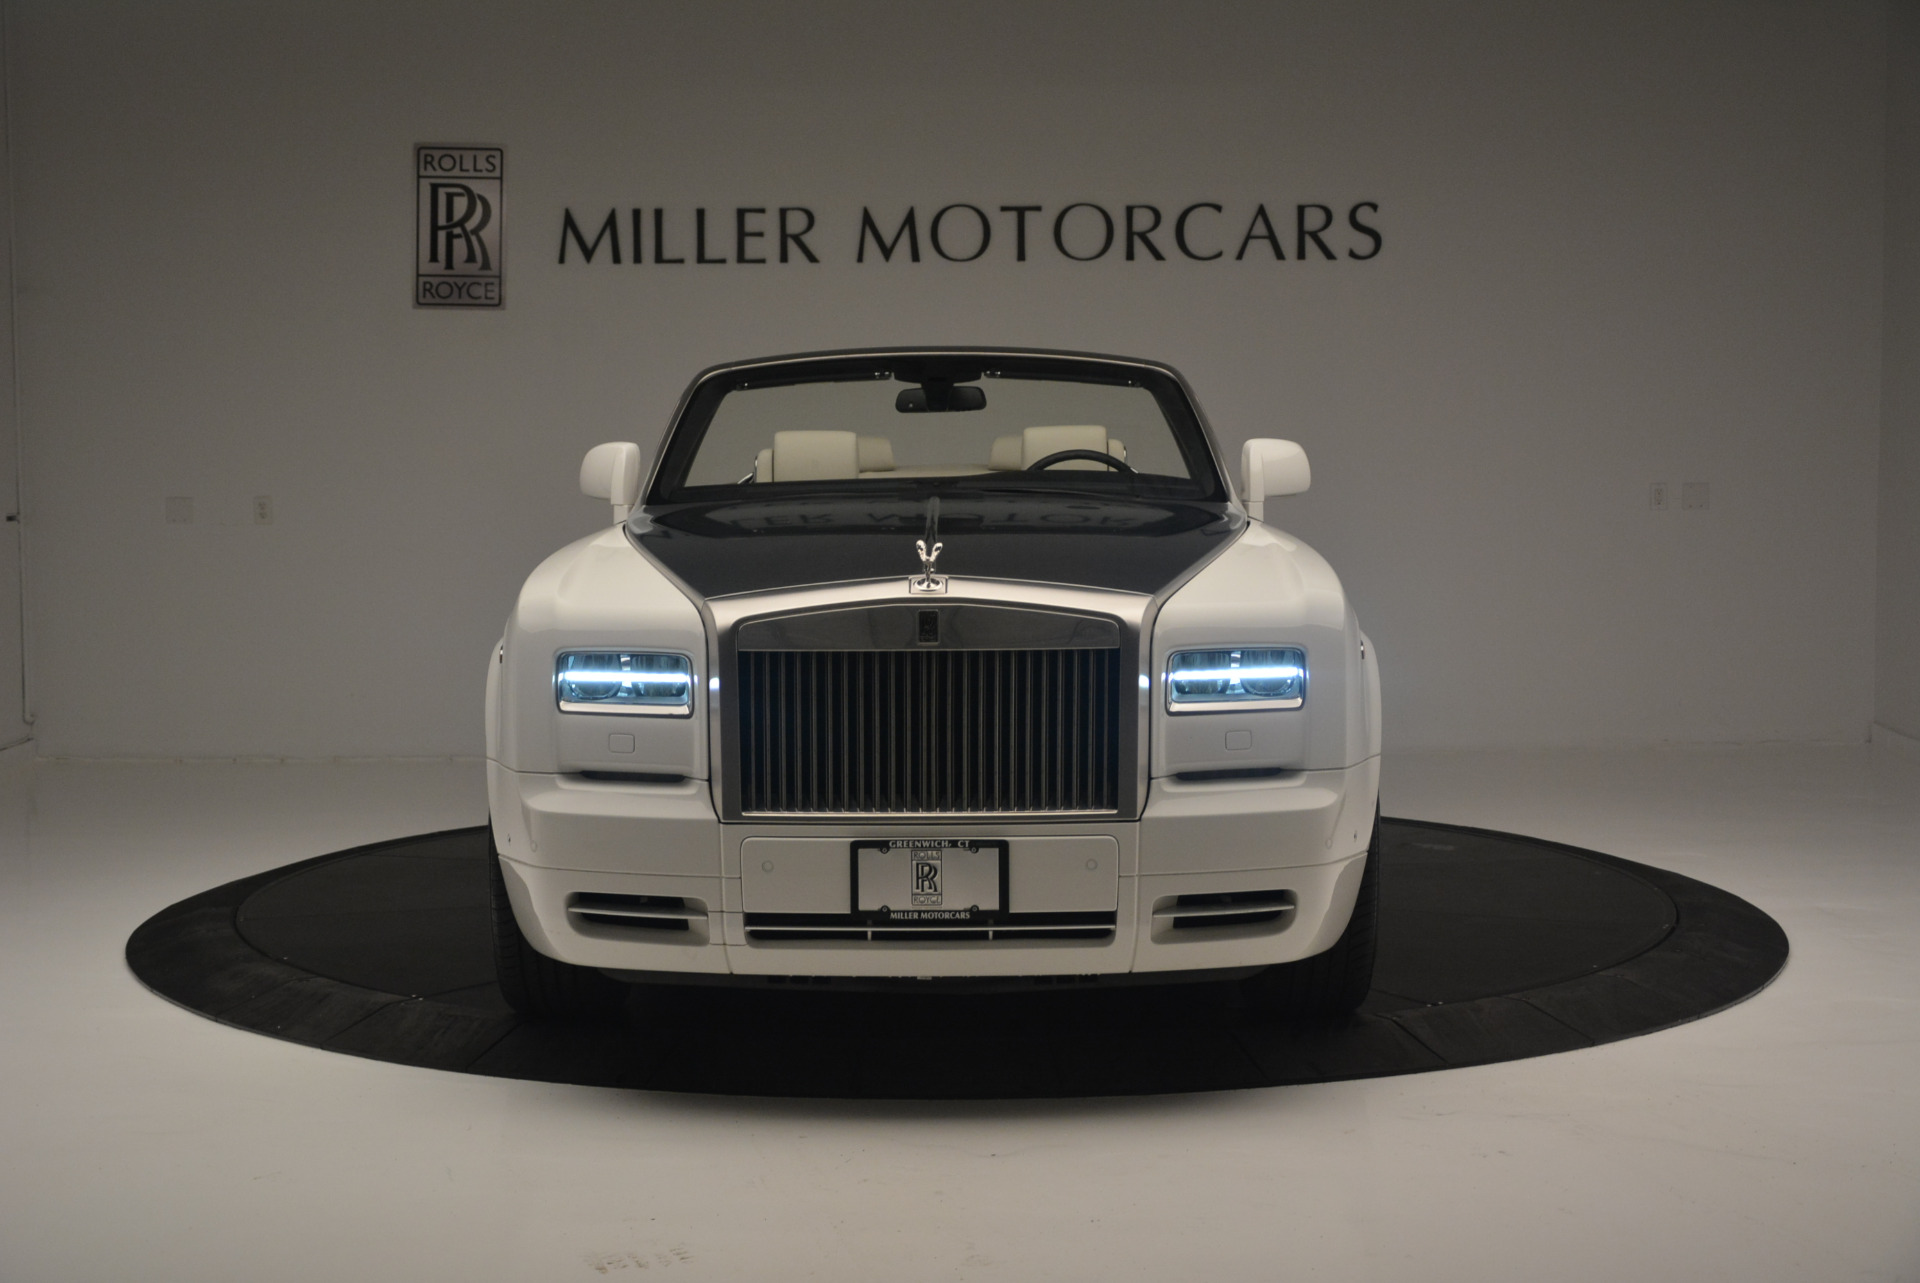 Used 2013 Rolls-Royce Phantom Drophead Coupe  For Sale In Greenwich, CT 2444_p8